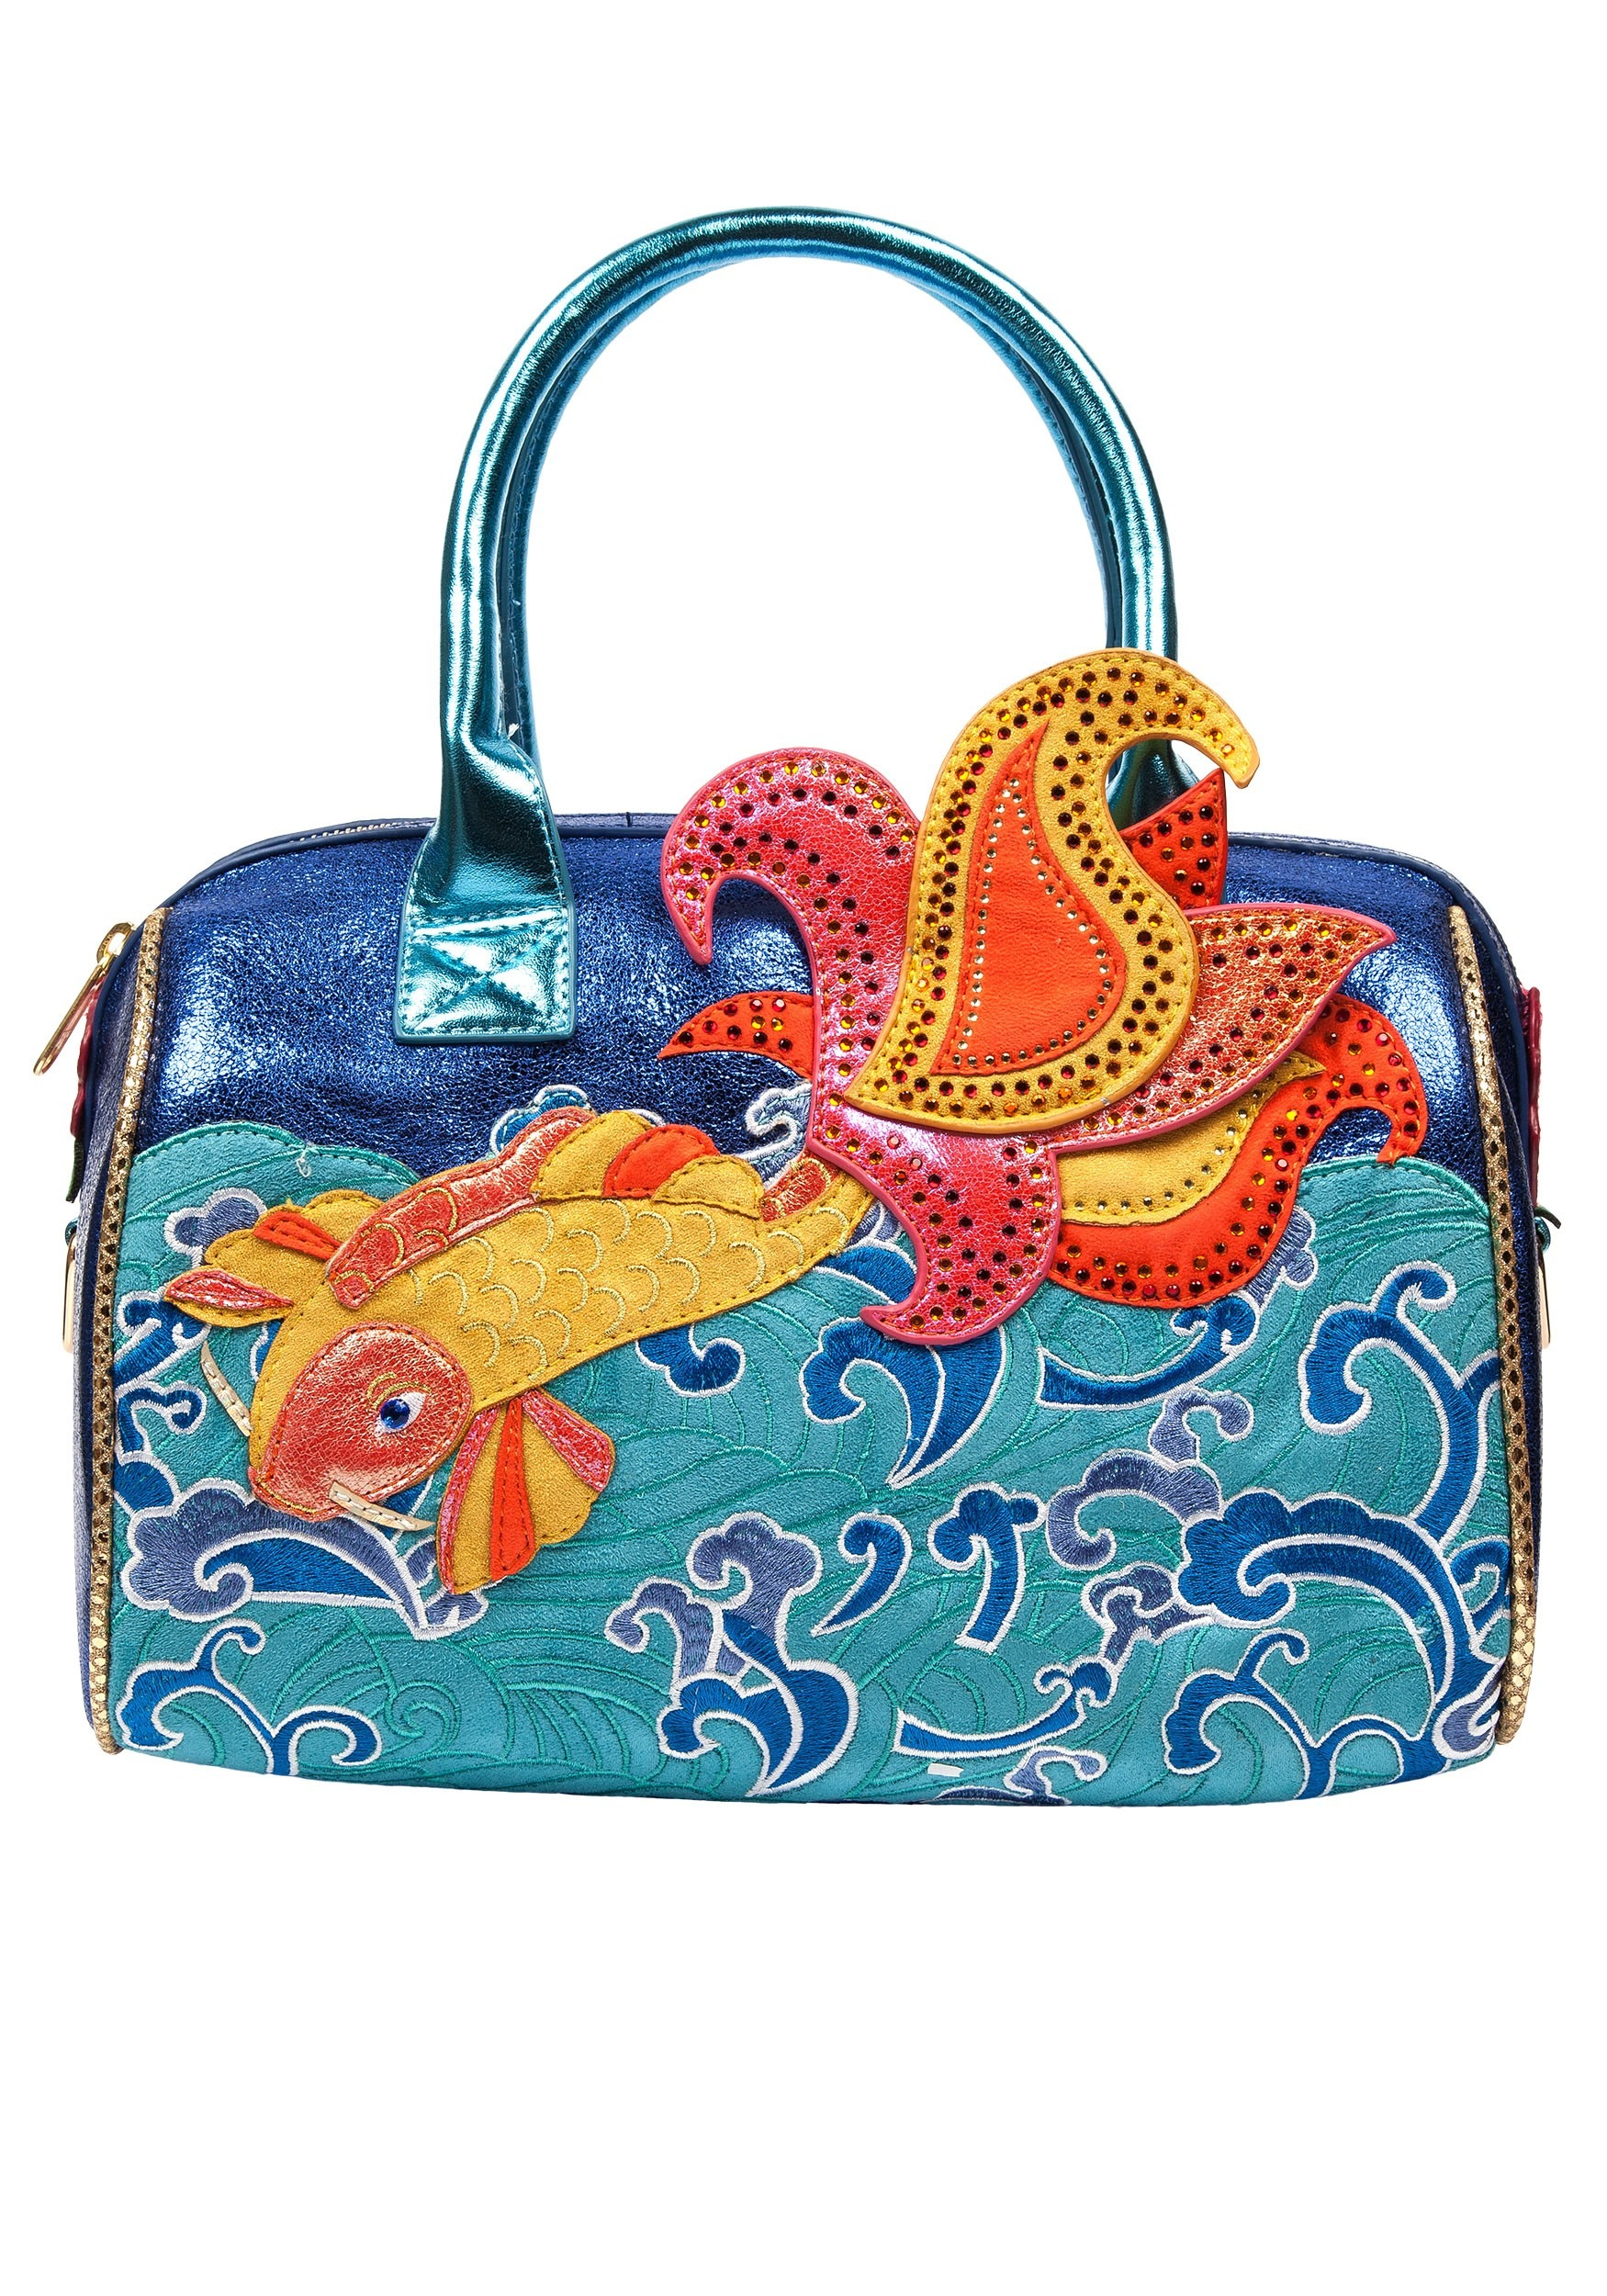 'Pescado Oro' Koi Fish Irregular Choice Turquoise Handbag